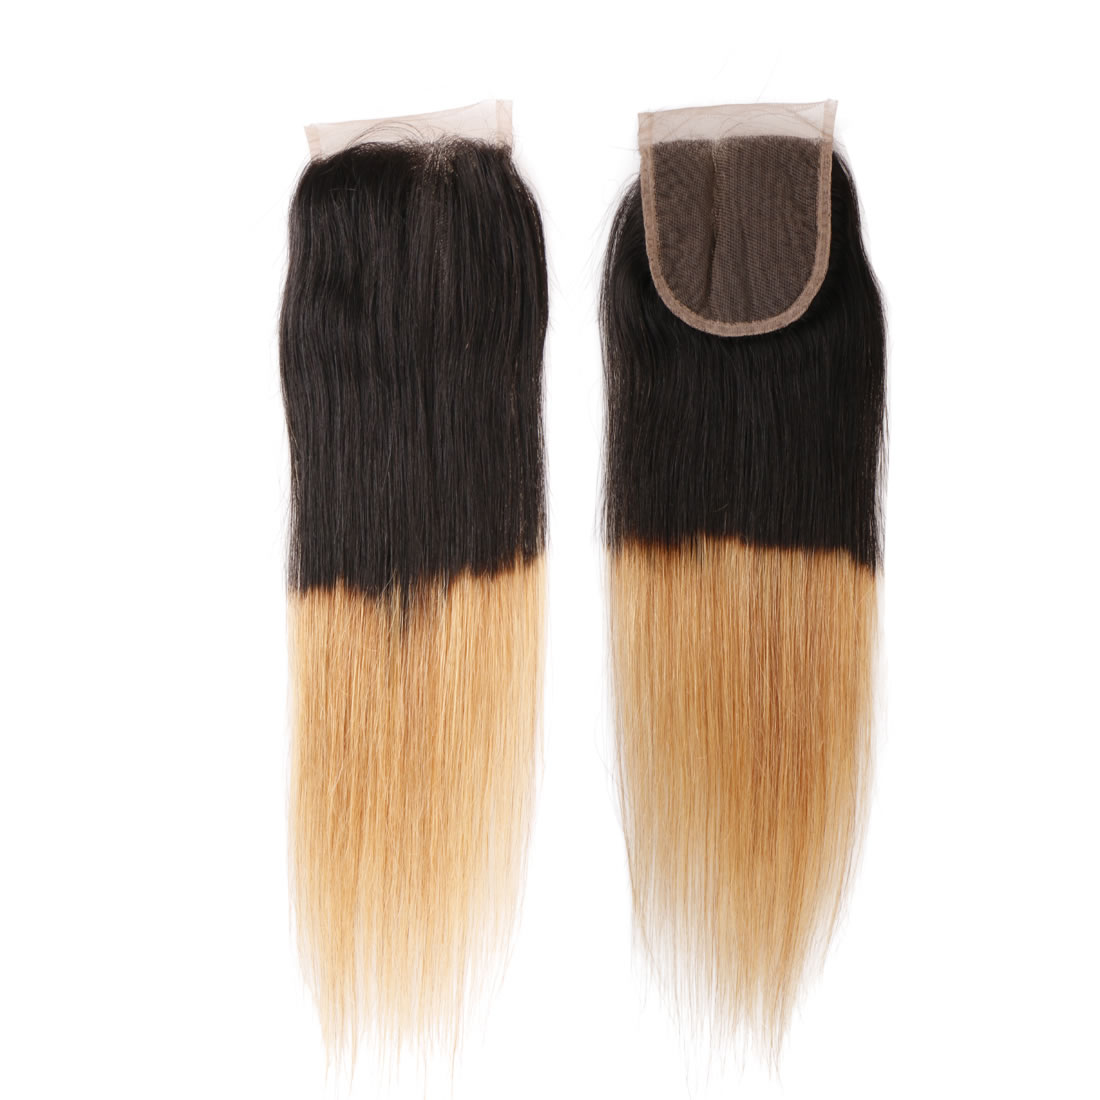 Remy Human Hair Straight 4x4 Free Part Lace Top Closure 10 Inch To